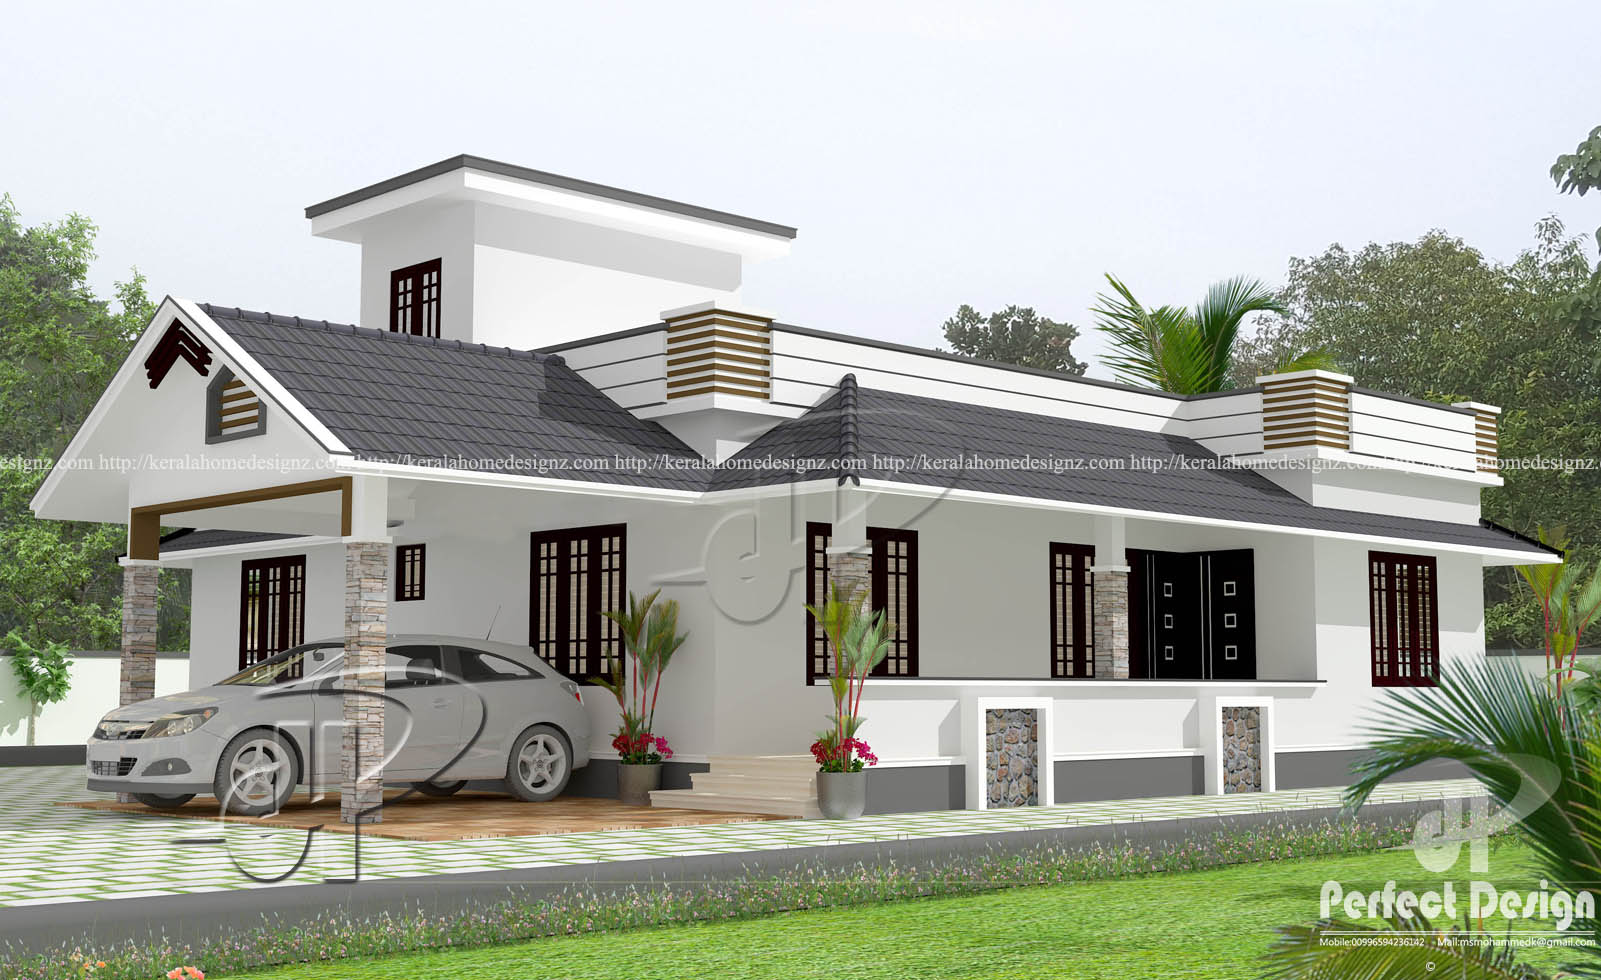 FT KERALA HOME DESIGNS